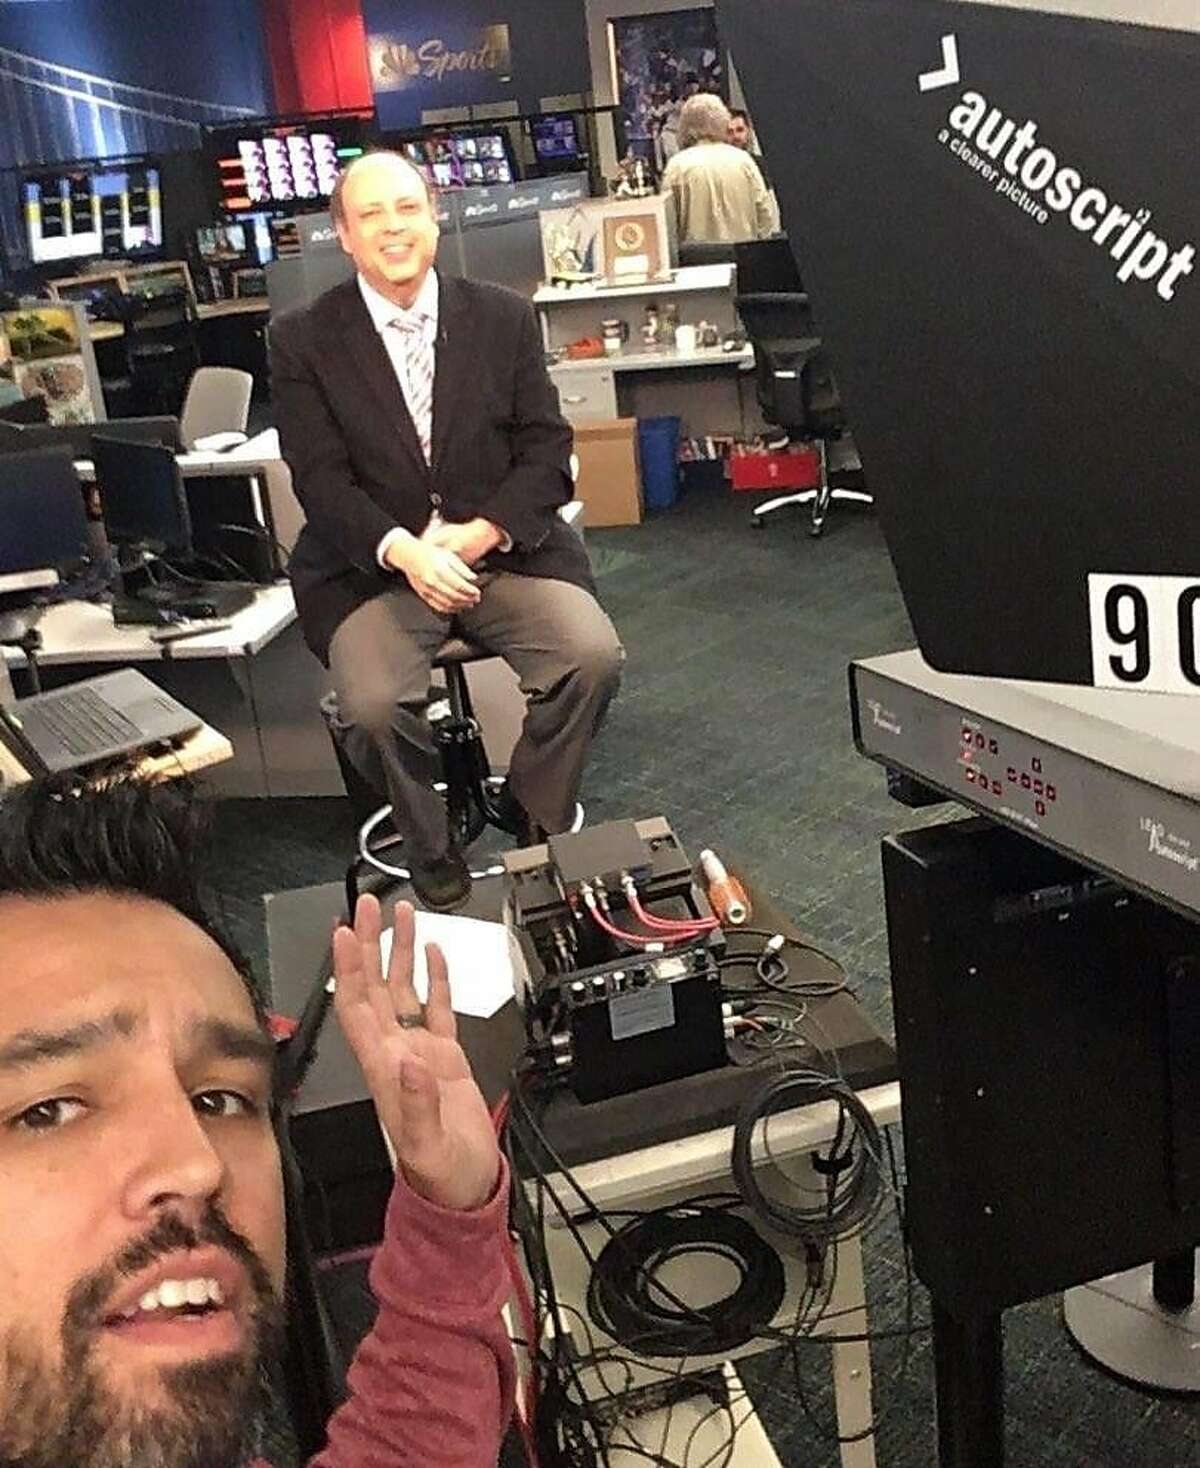 Giants beat writer Henry Schulman, with NBC Sports Bay Area host Ahmed Fareed, at the NBCSBA studio in San Francisco before Schulman did a live shot for the MLB Network.